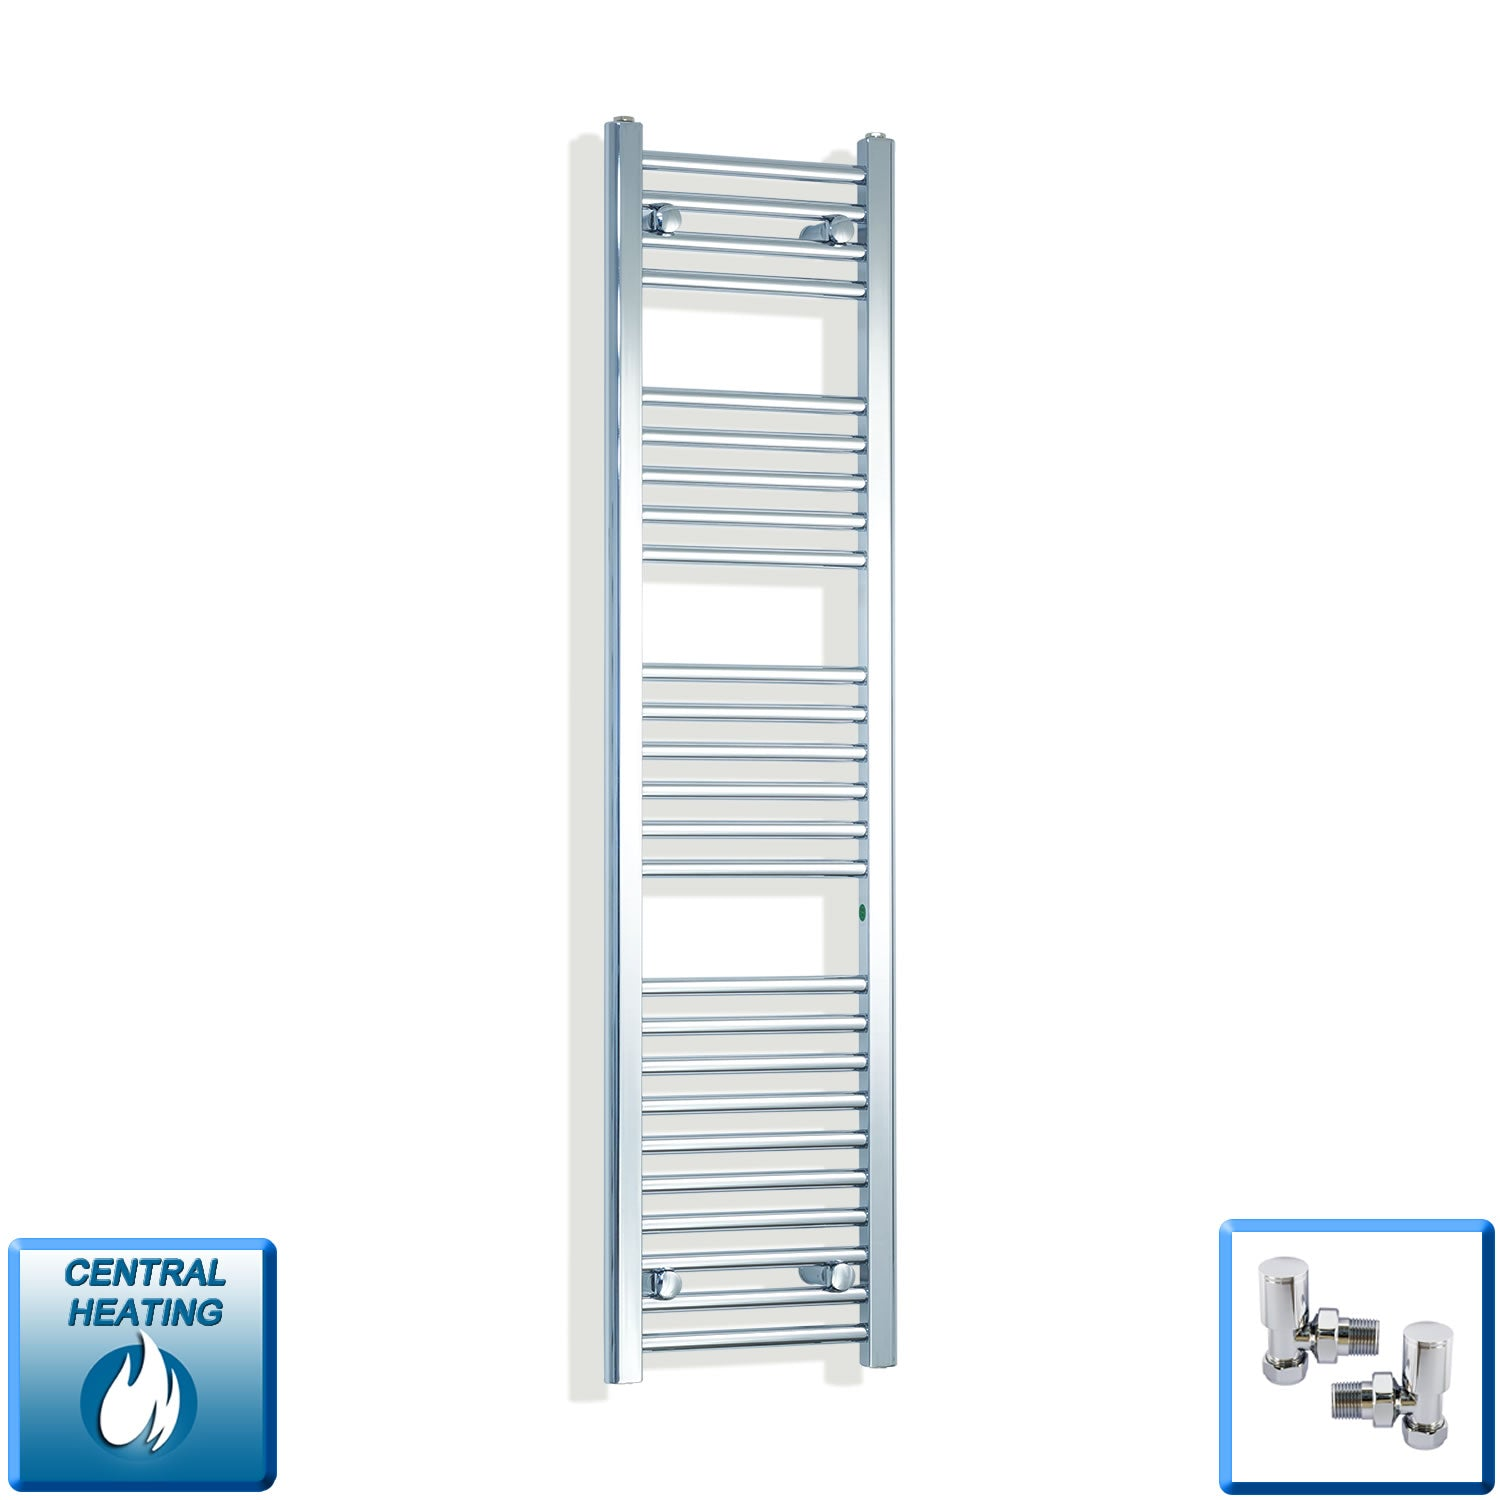 350mm Wide 1400mm High Chrome Towel Rail Radiator With Angled Valve